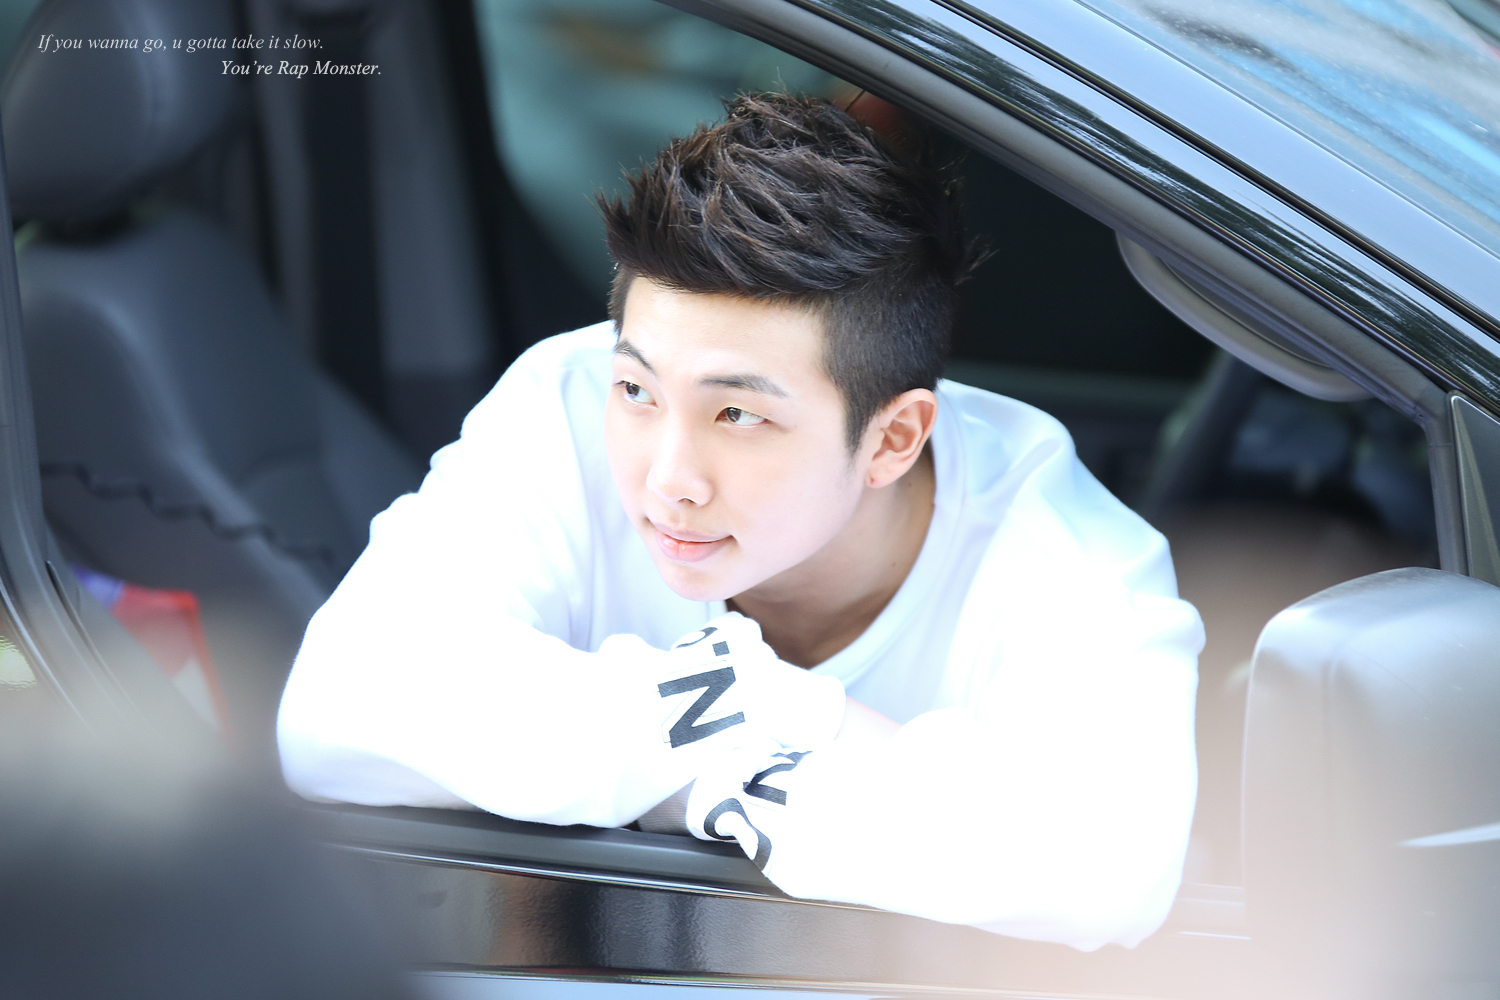 BTS-Rap-Monster-image-bts-rap-monster-36